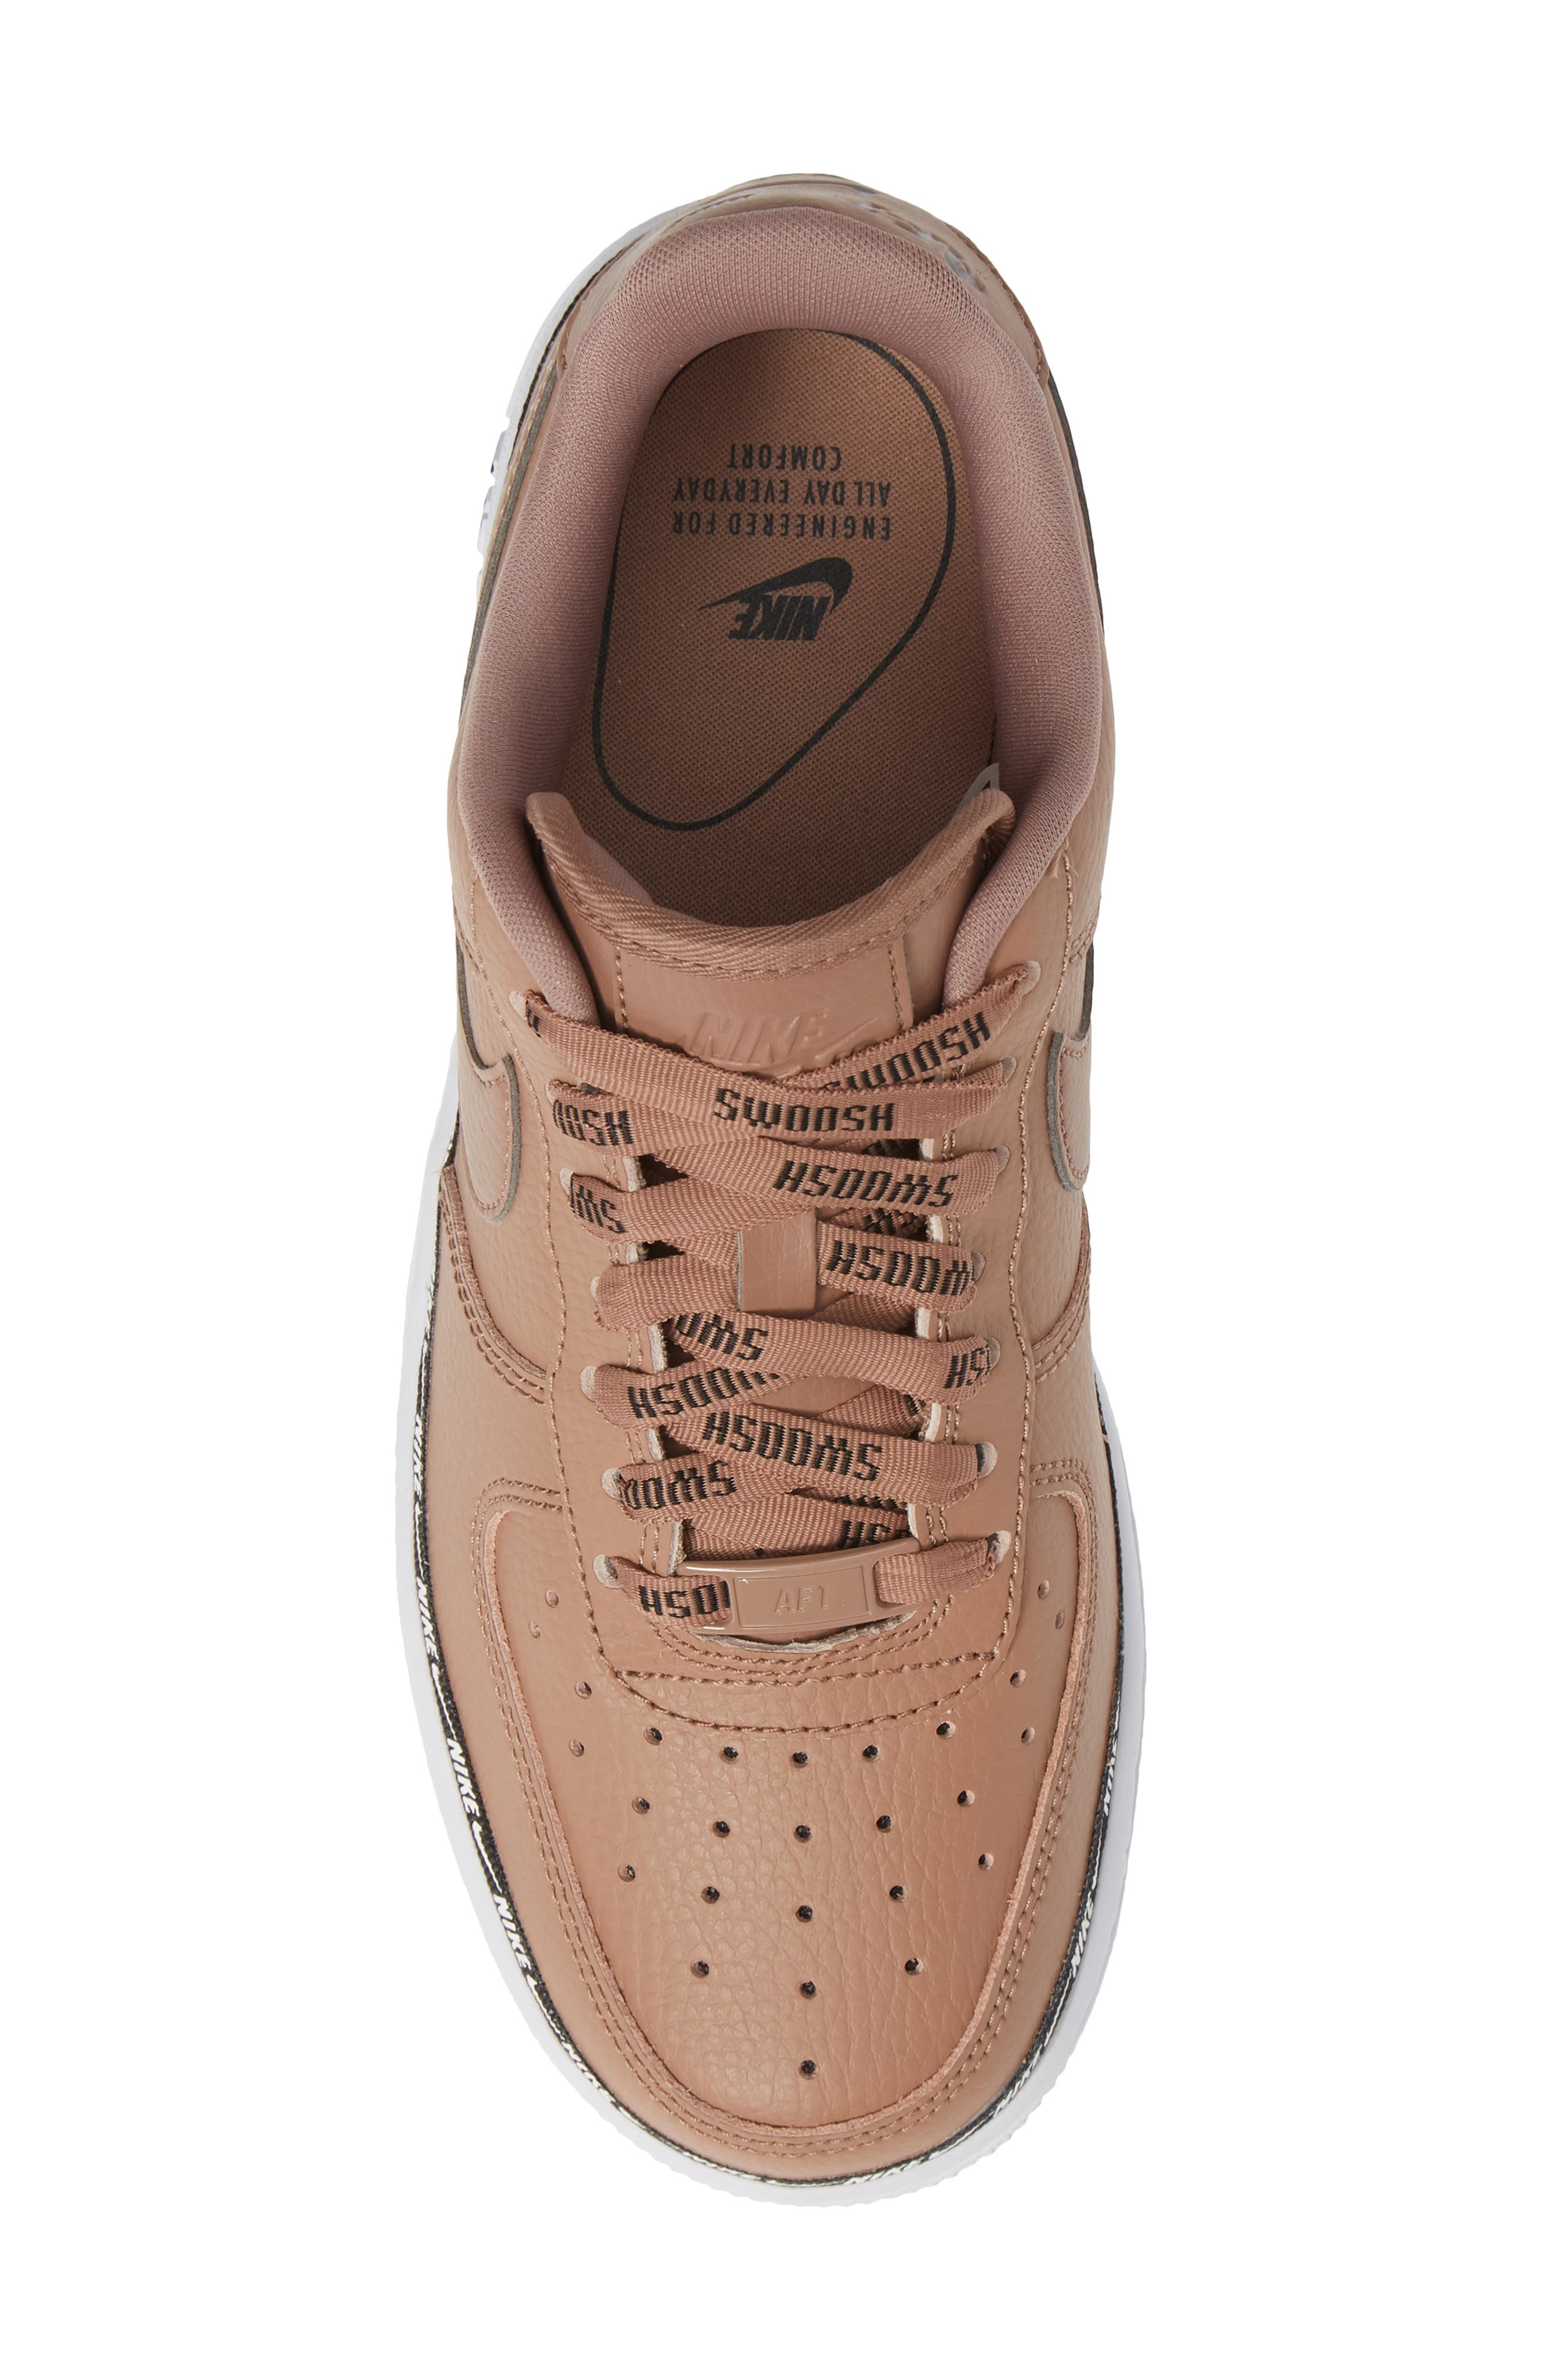 Air Force 1 '07 SE Premium Sneaker,                             Alternate thumbnail 5, color,                             DESERT DUST/ BLACK/ WHITE